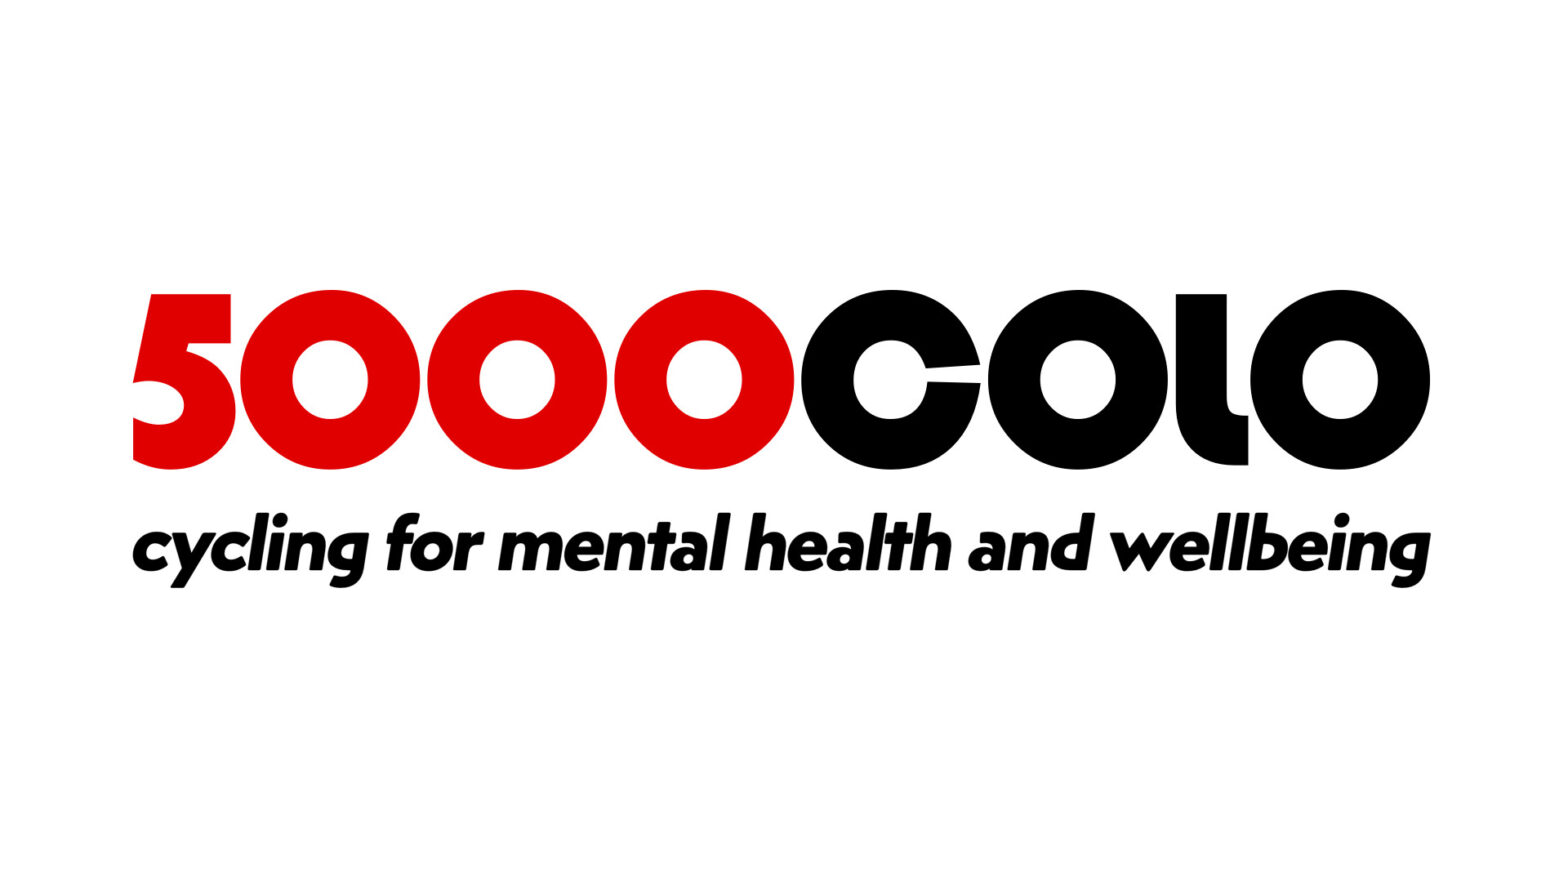 5000colo - cycling for mental health and wellbeing